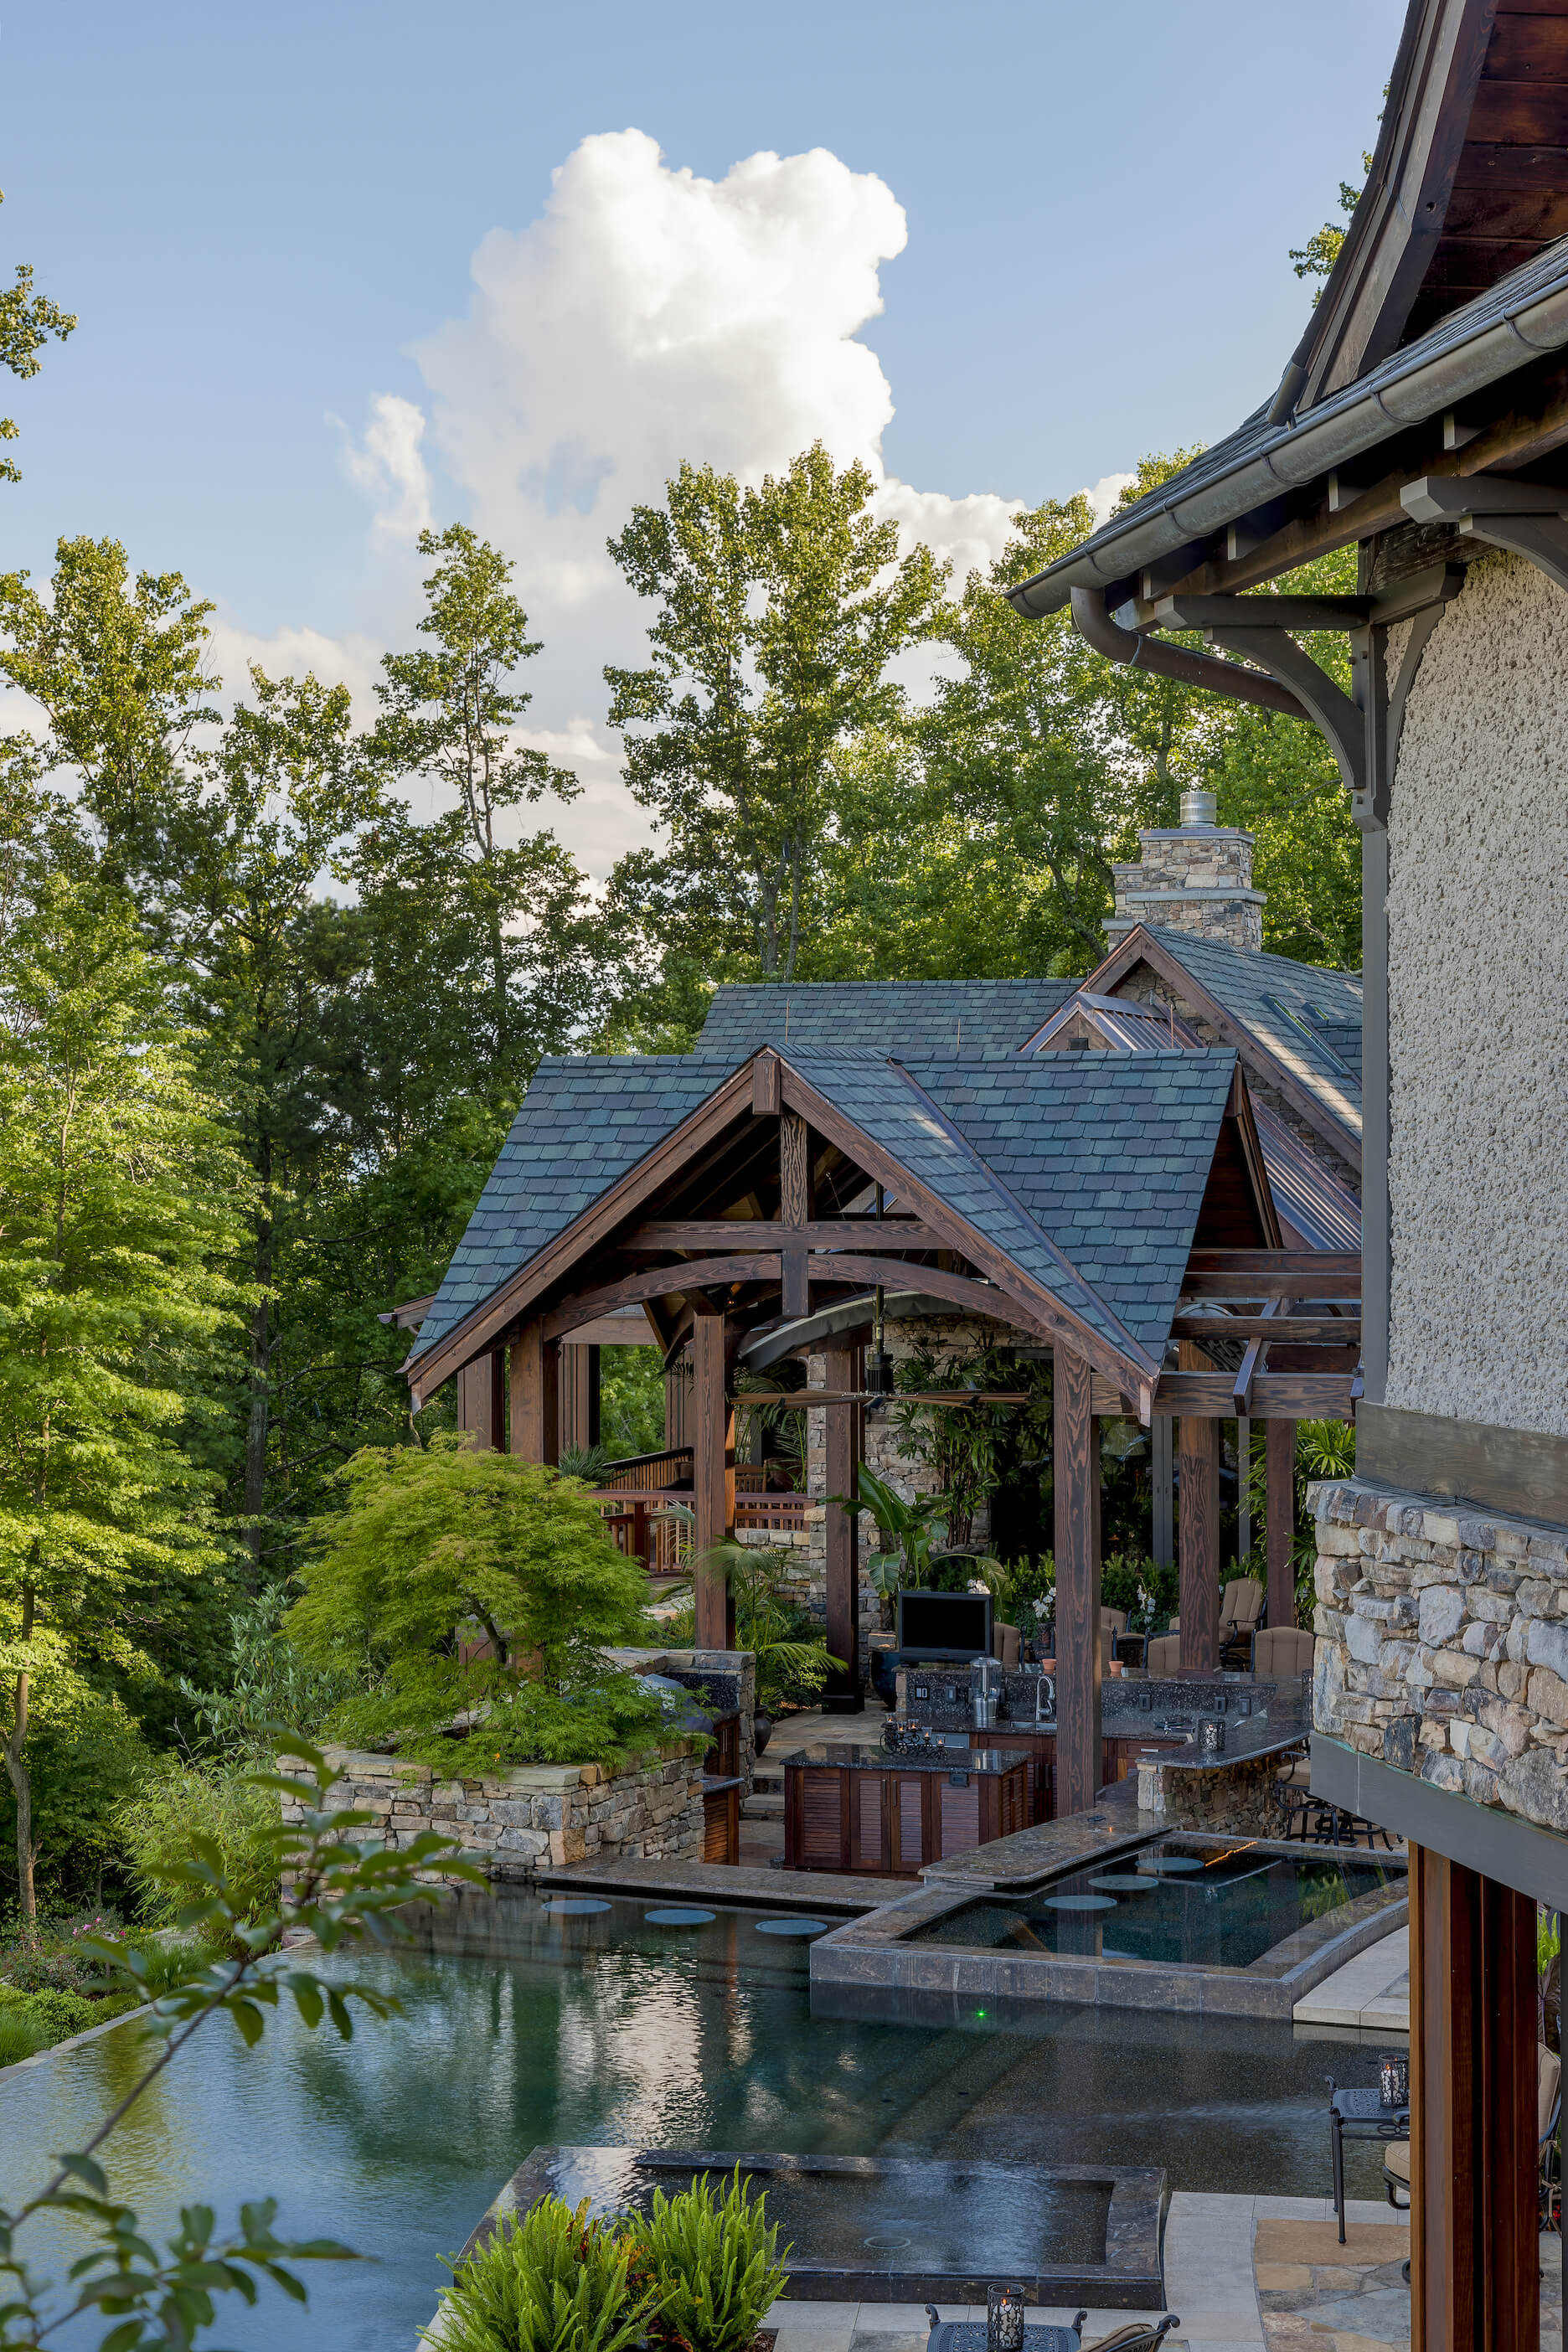 Here he have the fully featured outdoor summer kitchen, with rich wood cabinetry and granite countertops, beneath a shelter structure. Water features abound, including the infinite edge pool seen at left.